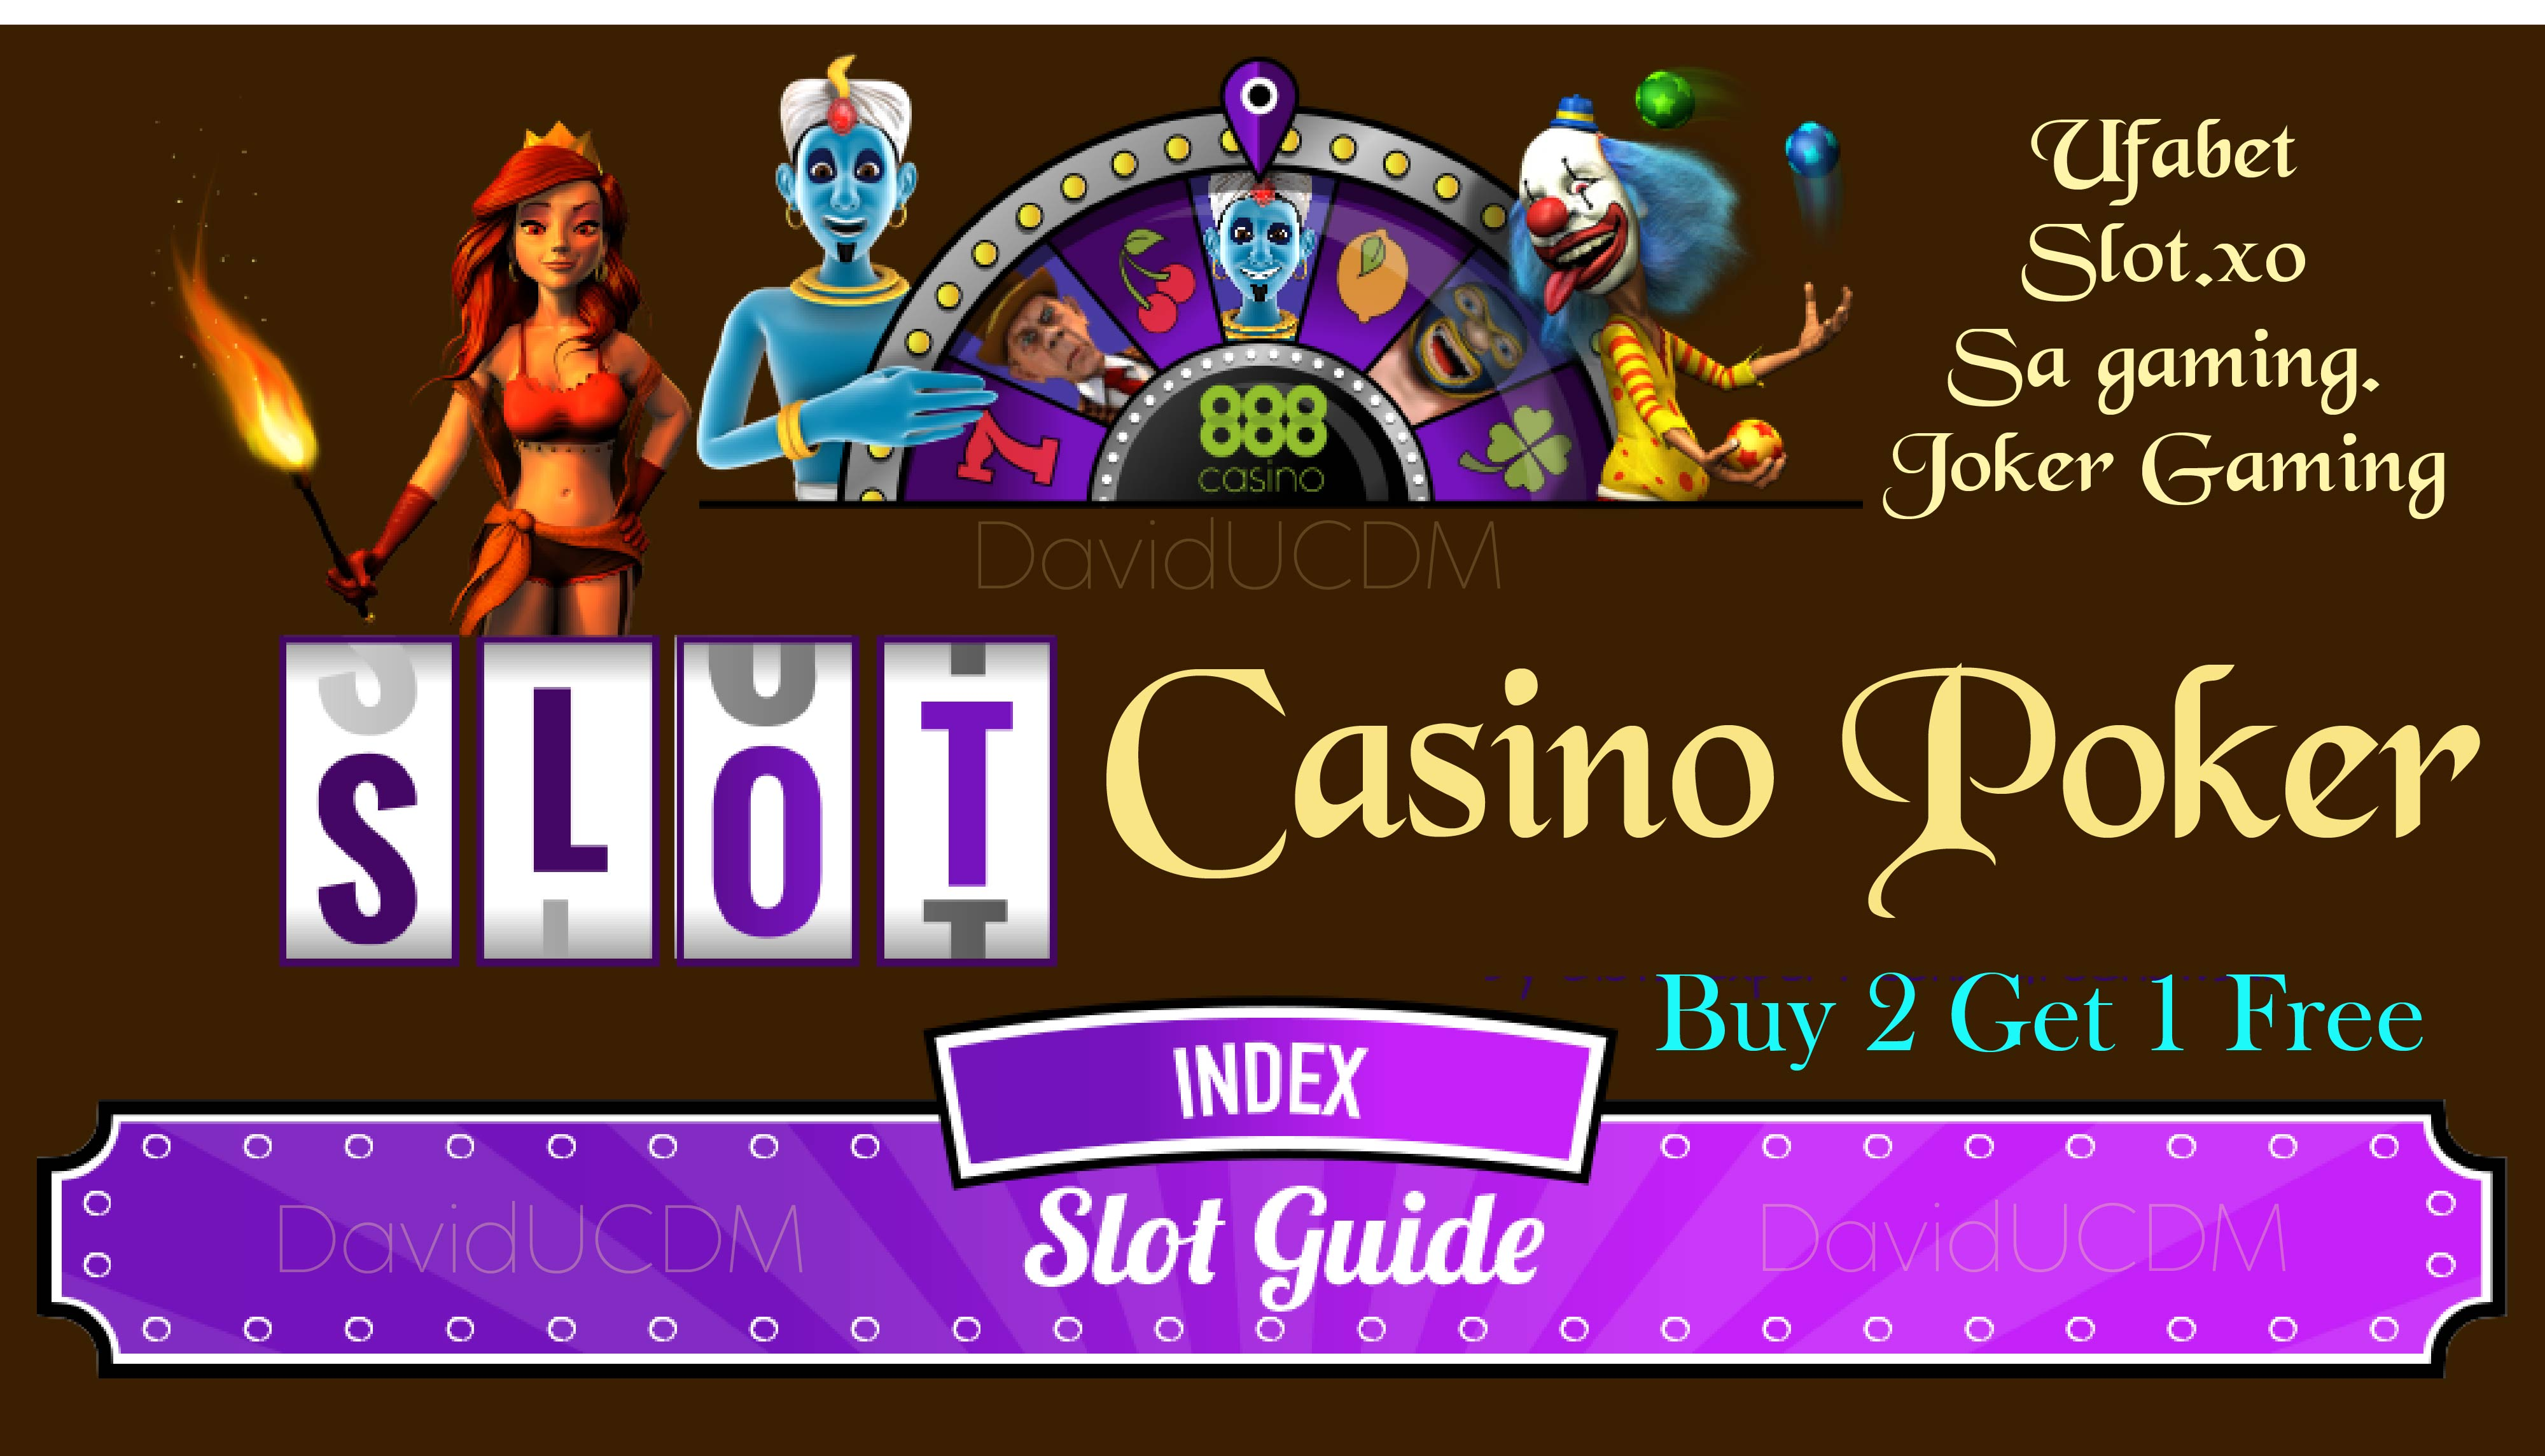 Latest 2021 Adult,  Escort & Casino,  poker,  Bet online for 50 PR-9 or DA60-78+ High Quality Backlinks